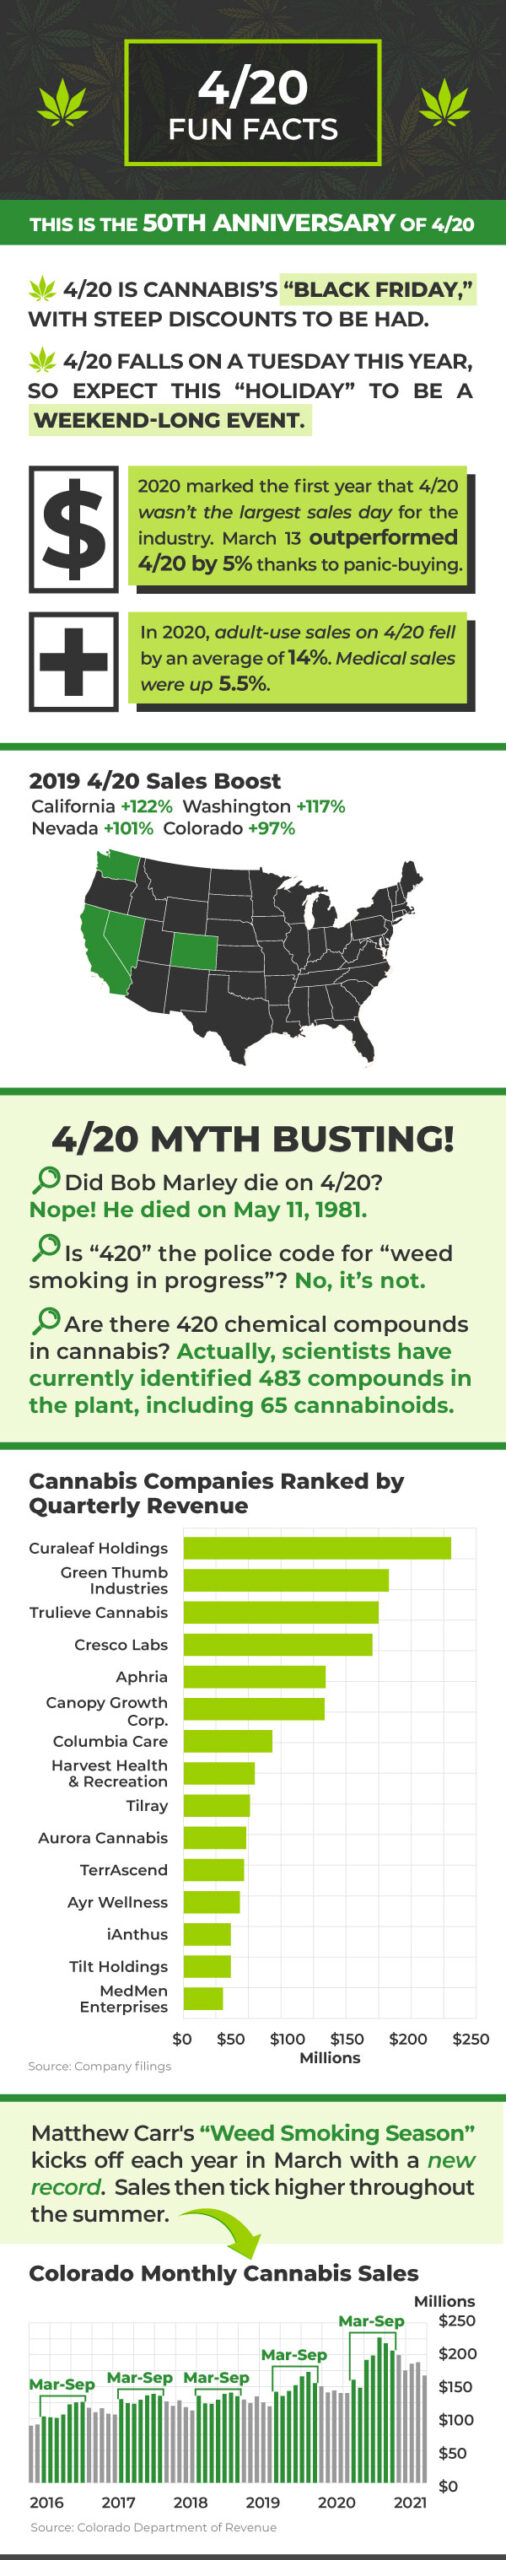 Some facts and clarifications about the history of 4/20.